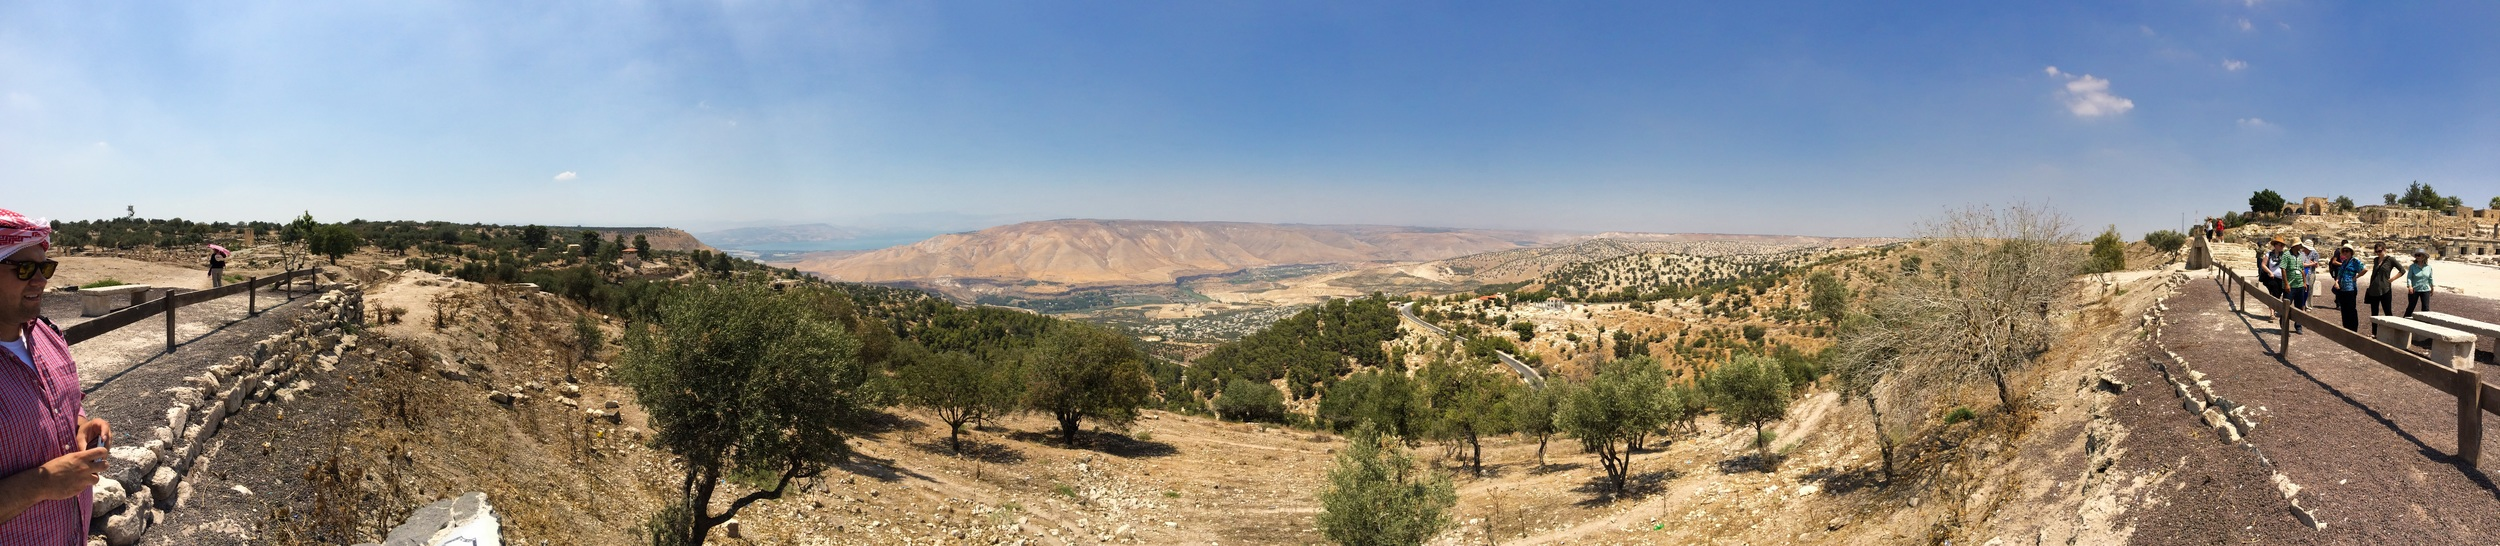 Panoramic view from Umm Qais of the Sea of Galilee & Golan Heights